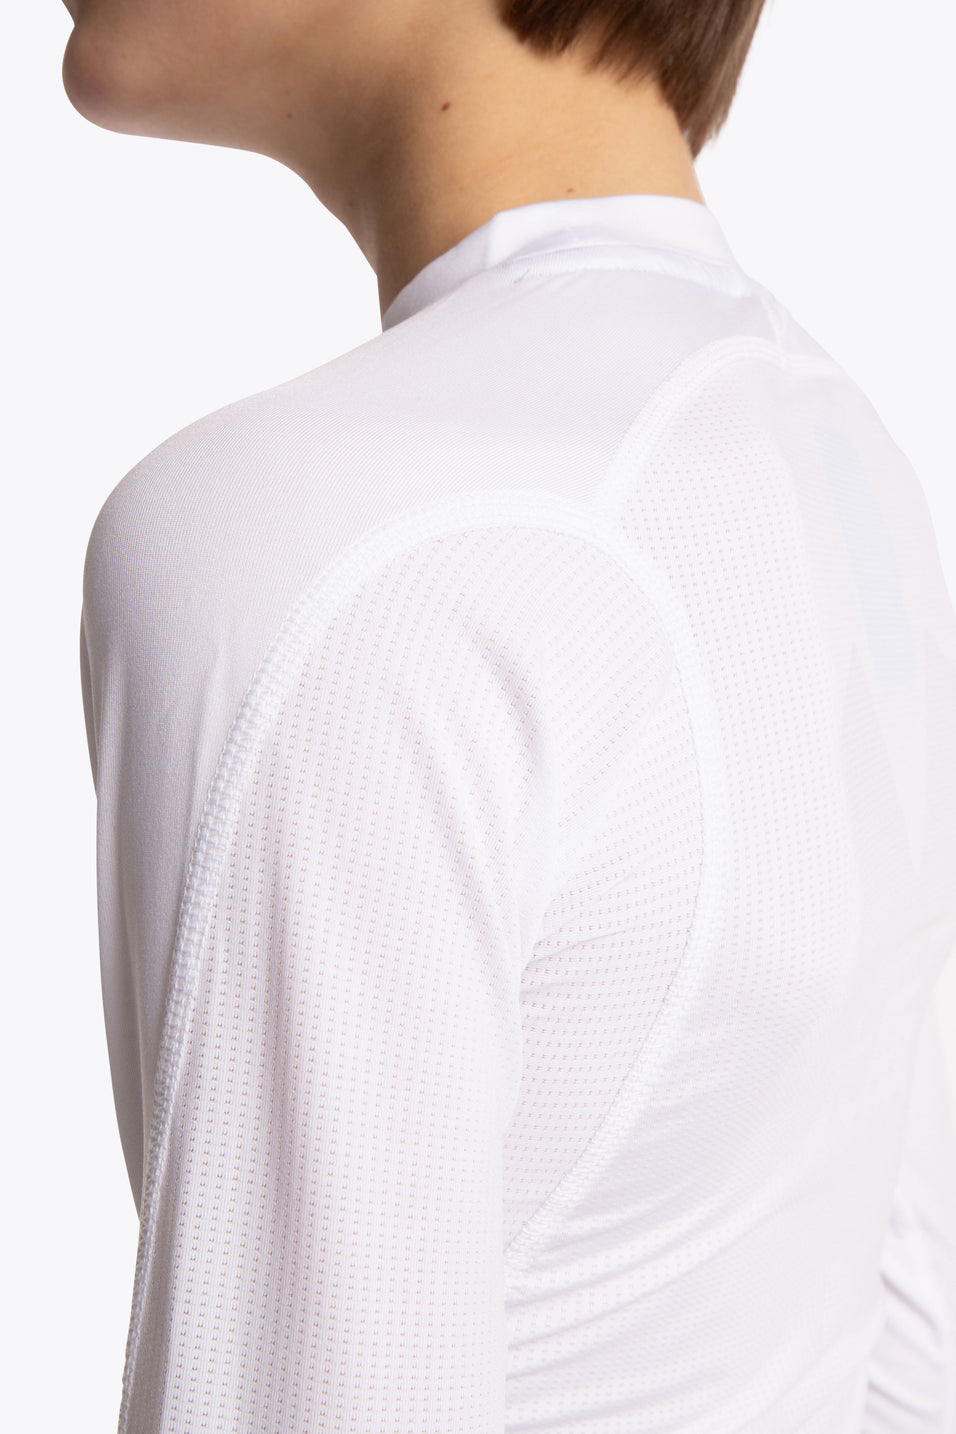 osaka base layers back